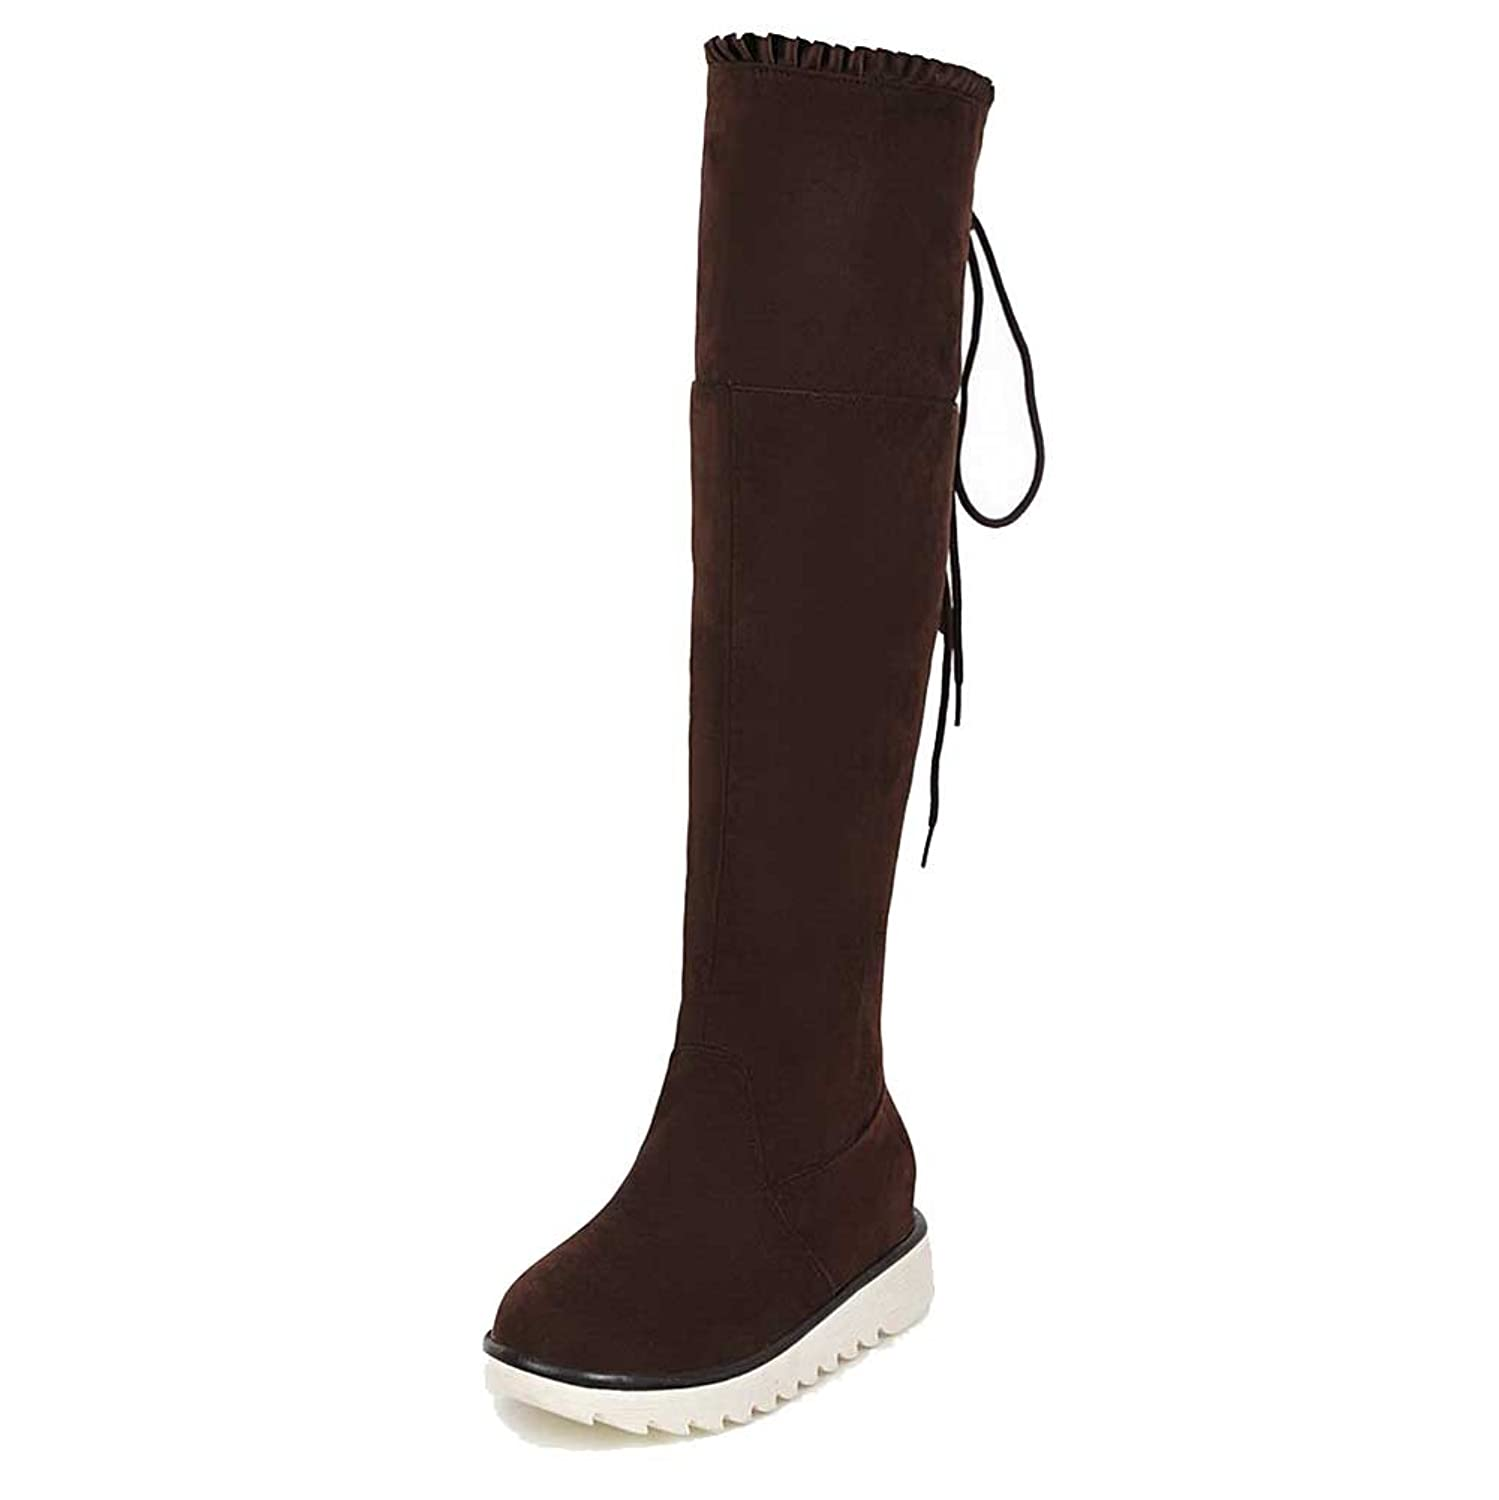 WeiPoot Women's Frosted Lace-up Round Closed Toe Kitten-Heels High-top Boots